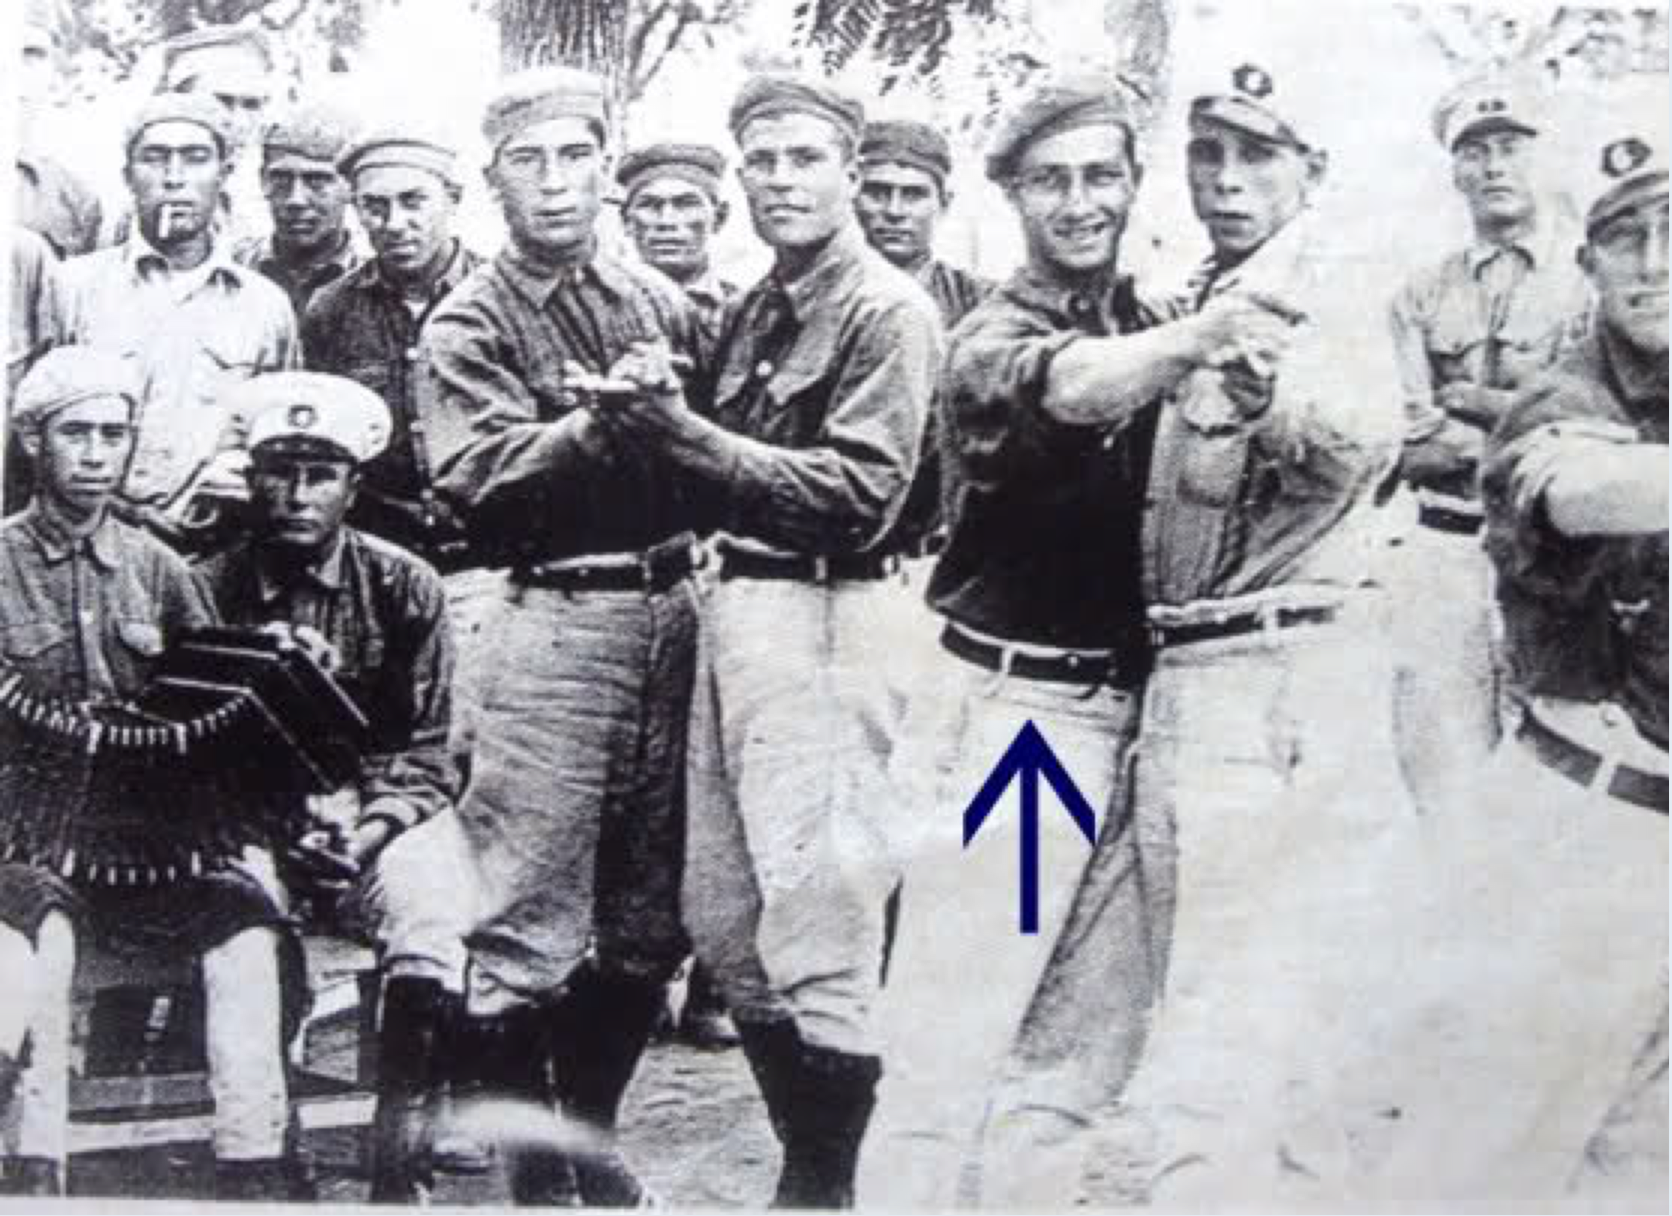 Racing Driver, Juan Fangio, dancing tango while on military service in Argentina, 1932